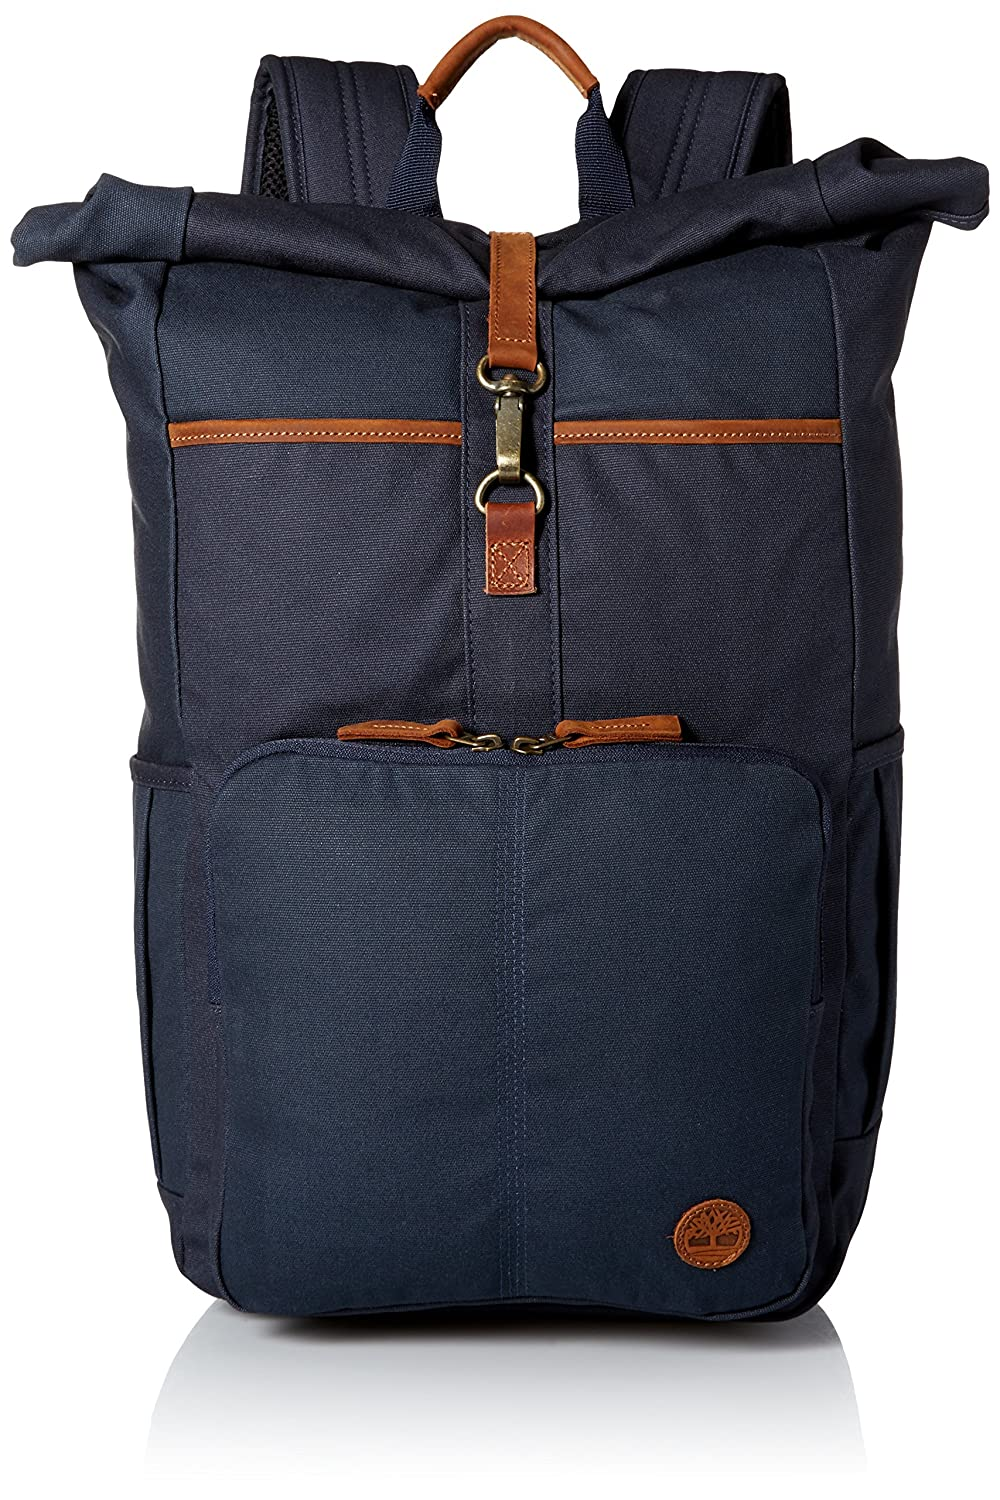 Timberland LUGGAGE メンズ カラー: ブルー B072ZV8SRL outerspace One Size